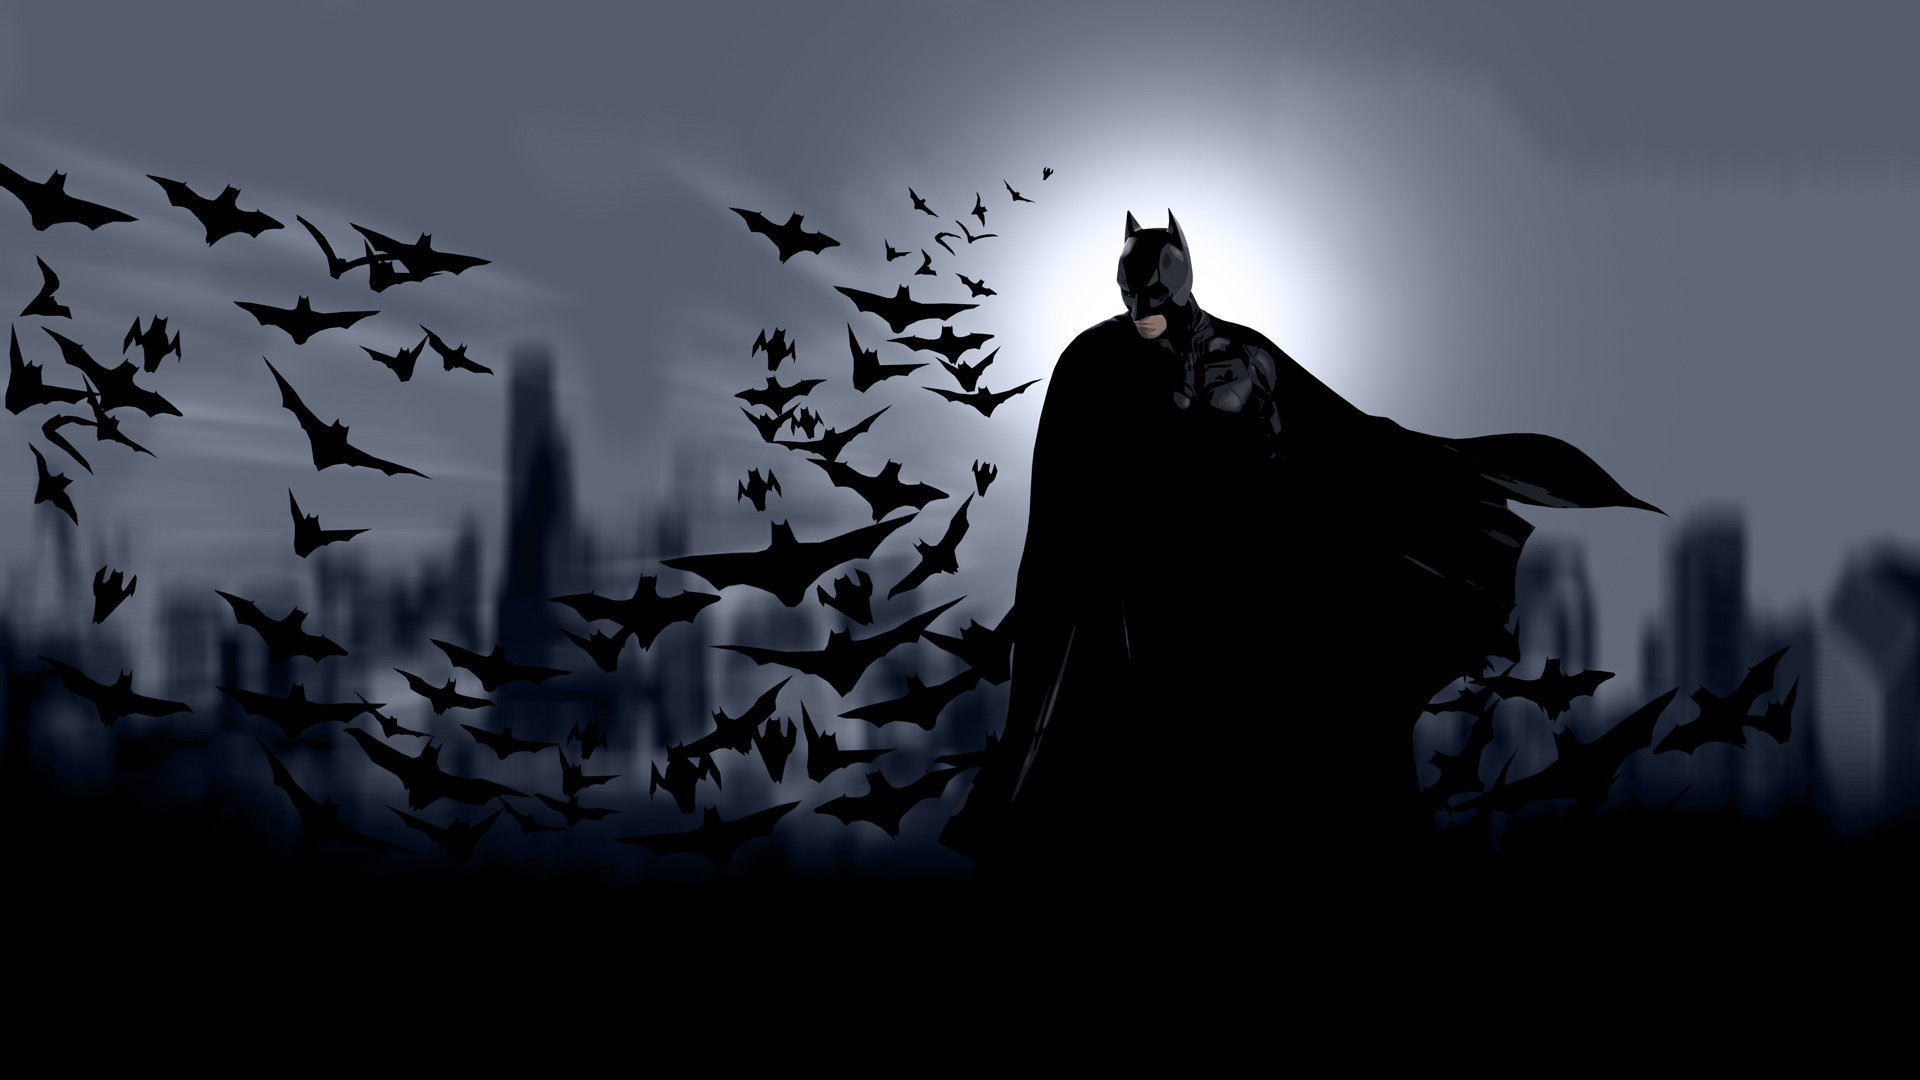 Best Wallpaper Macbook Batman - thumb-1920-72397  2018_451639.jpg